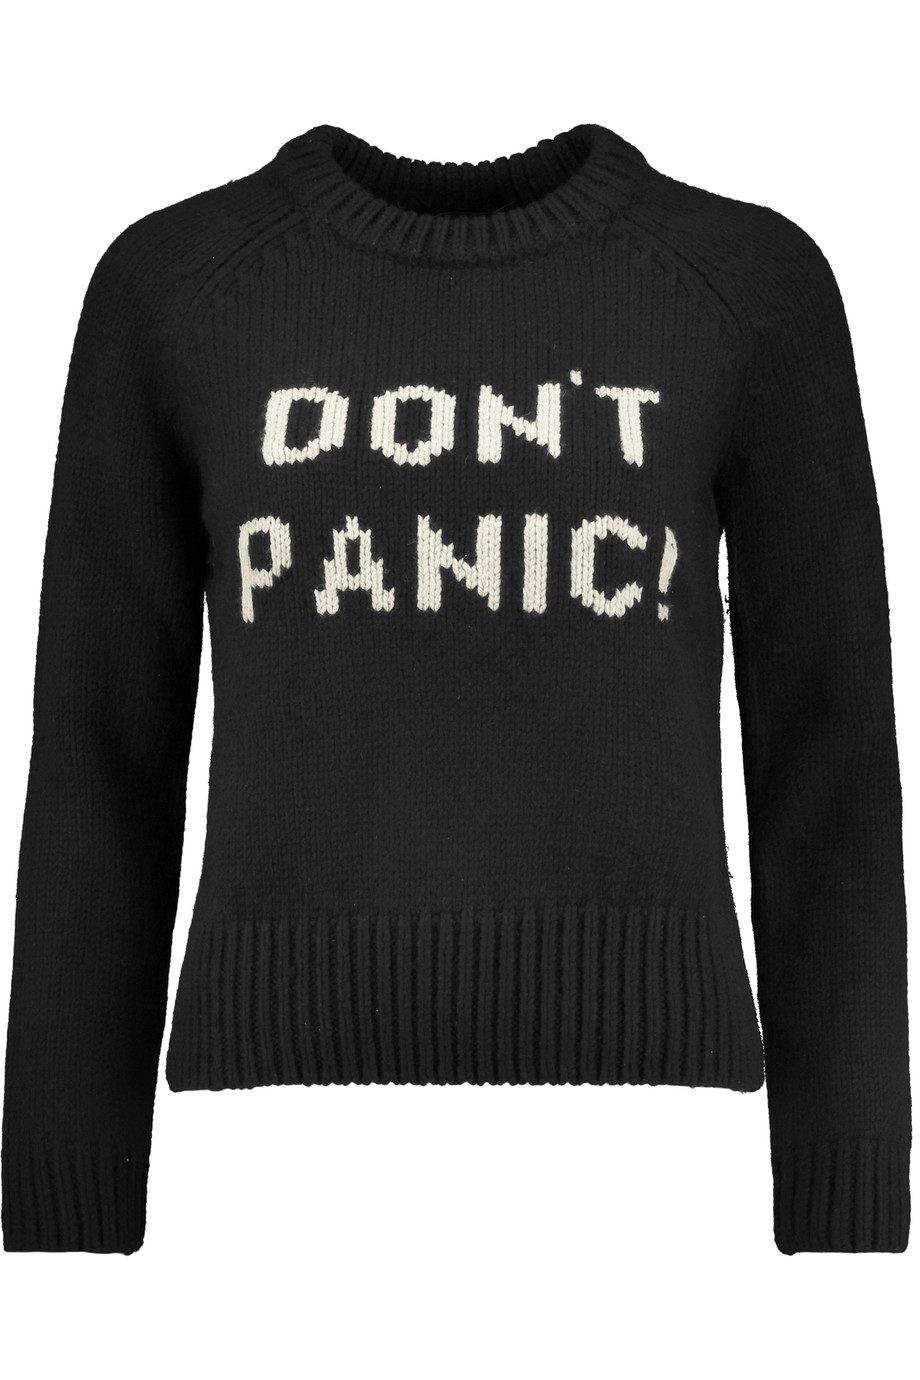 Marc by Marc Jacobs Don't Panic.jpg